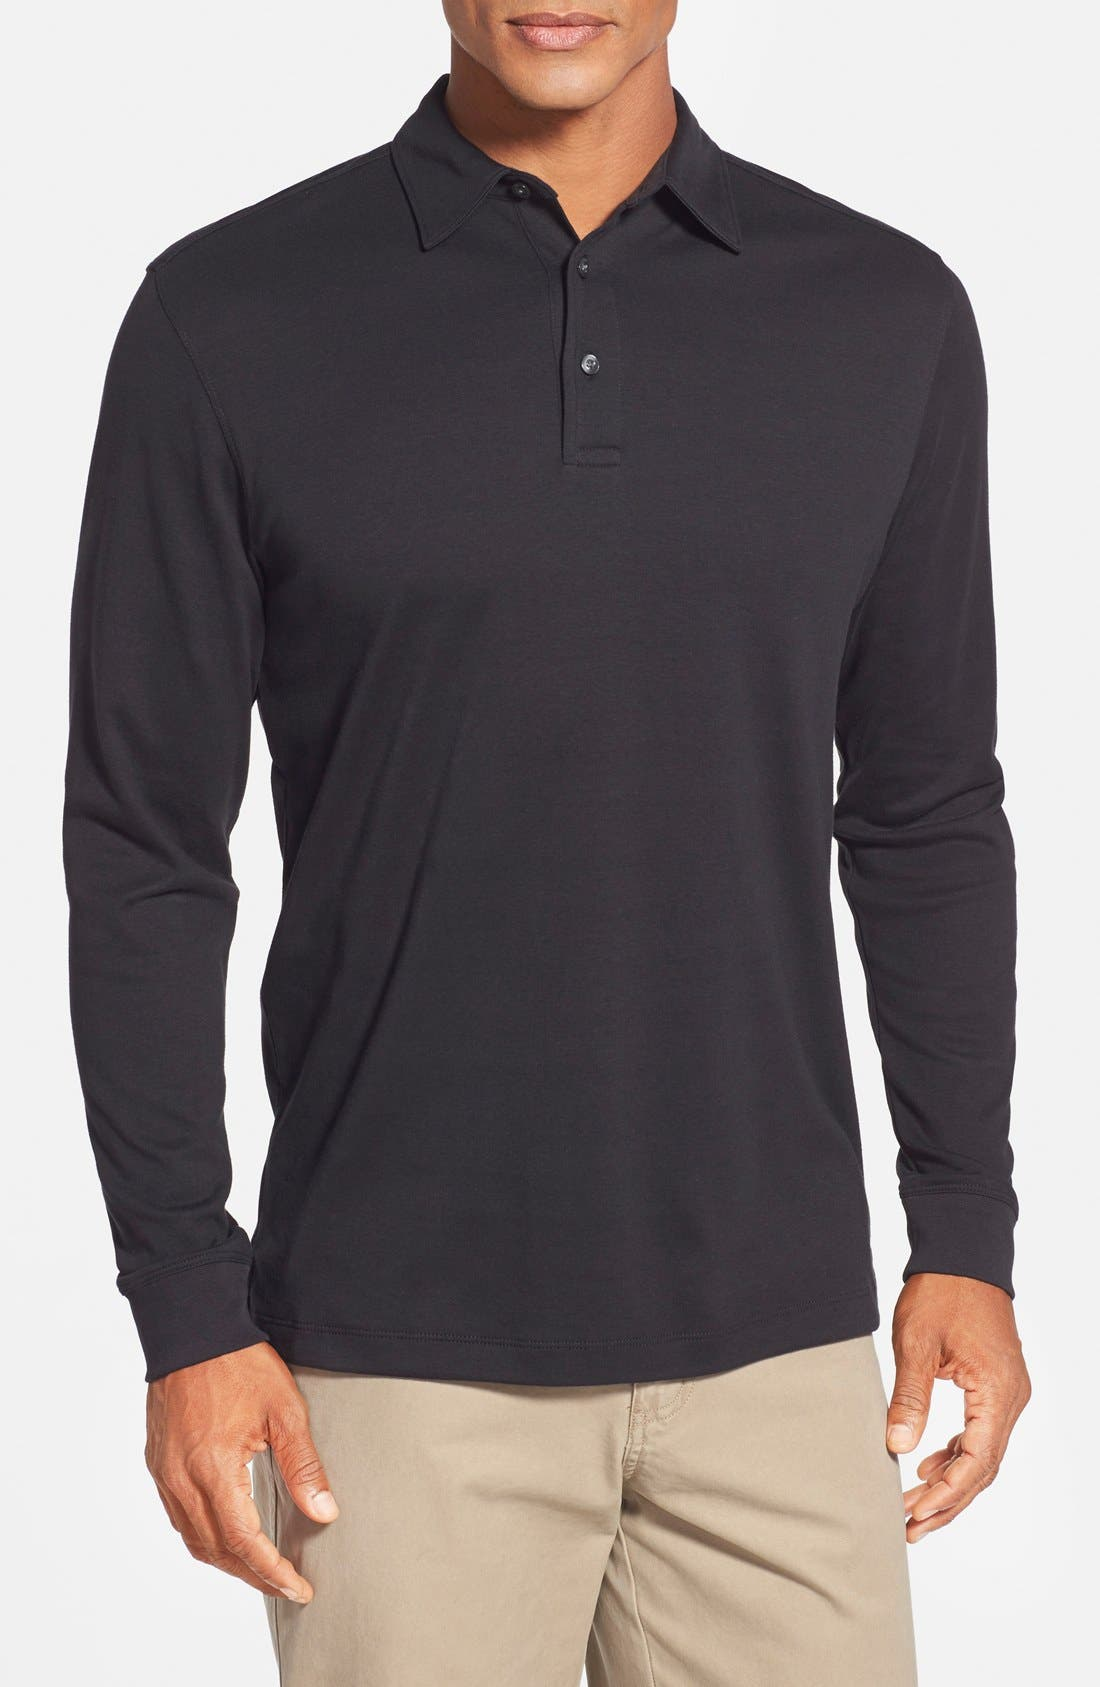 Alternate Image 1 Selected - Cutter & Buck 'Belfair' Pima Cotton Polo (Online Only)